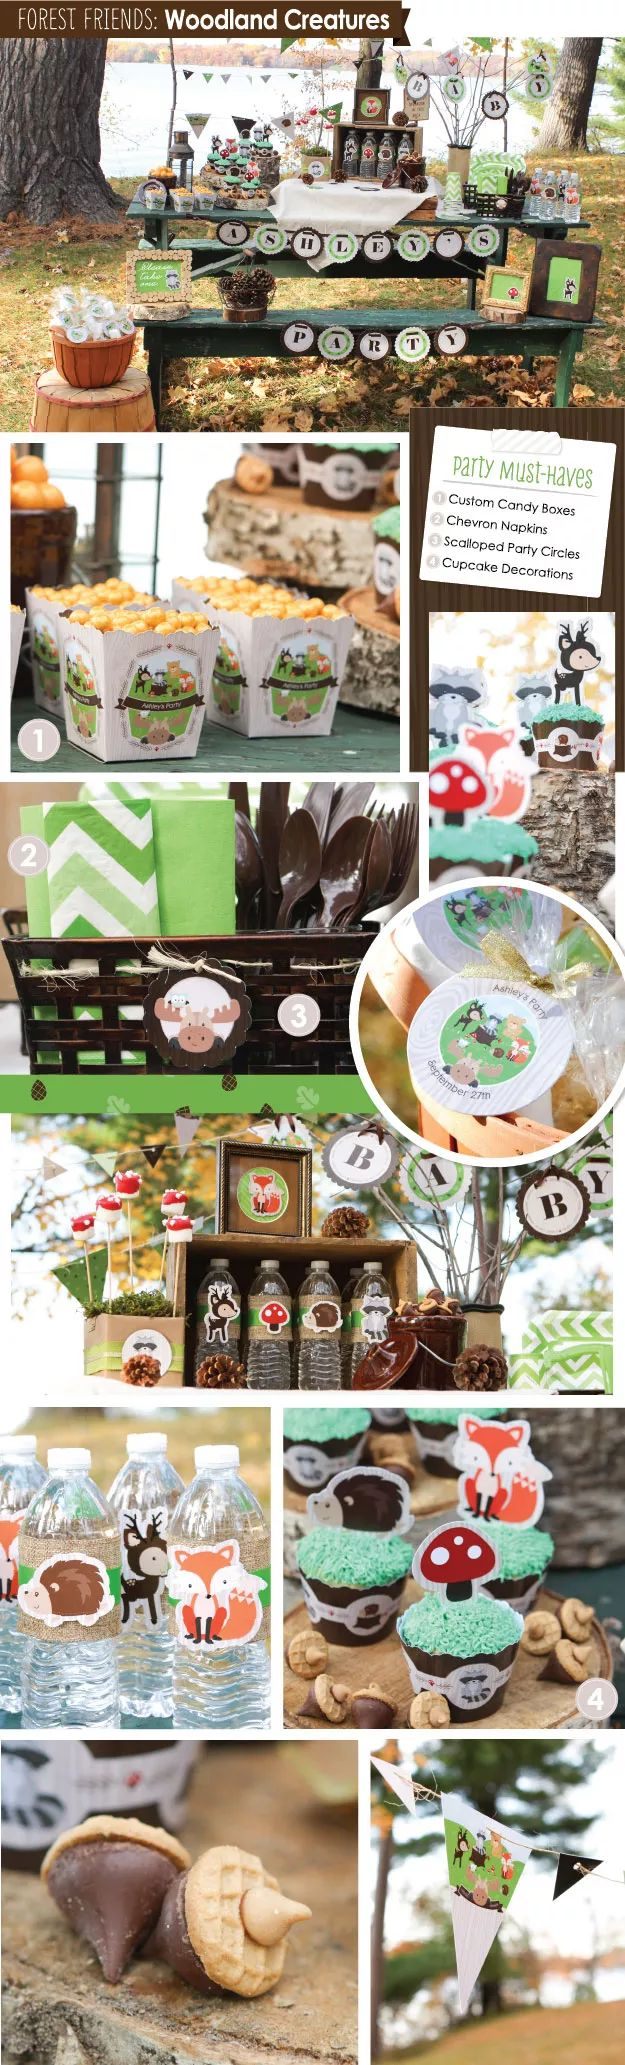 Perfect for a mommy-to-be who loves the outdoors and the furry forest friends that come with it. This woodland creatures baby shower theme will inspire you to host an adorable baby shower